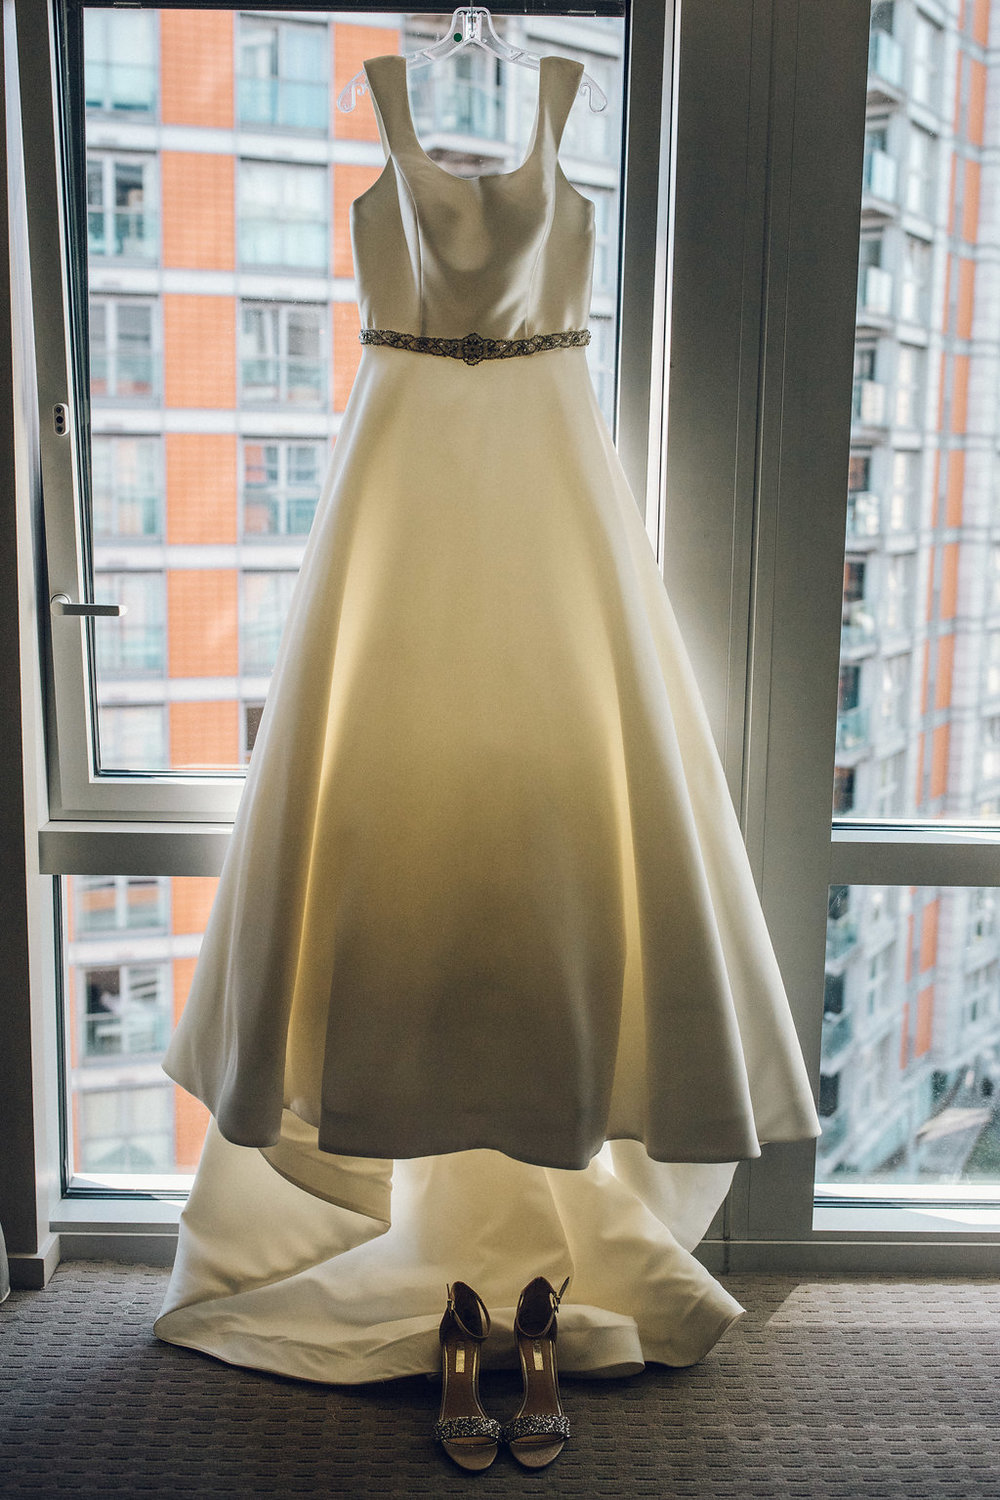 Bridal gown hanging up - Raddison Blu, Poplar